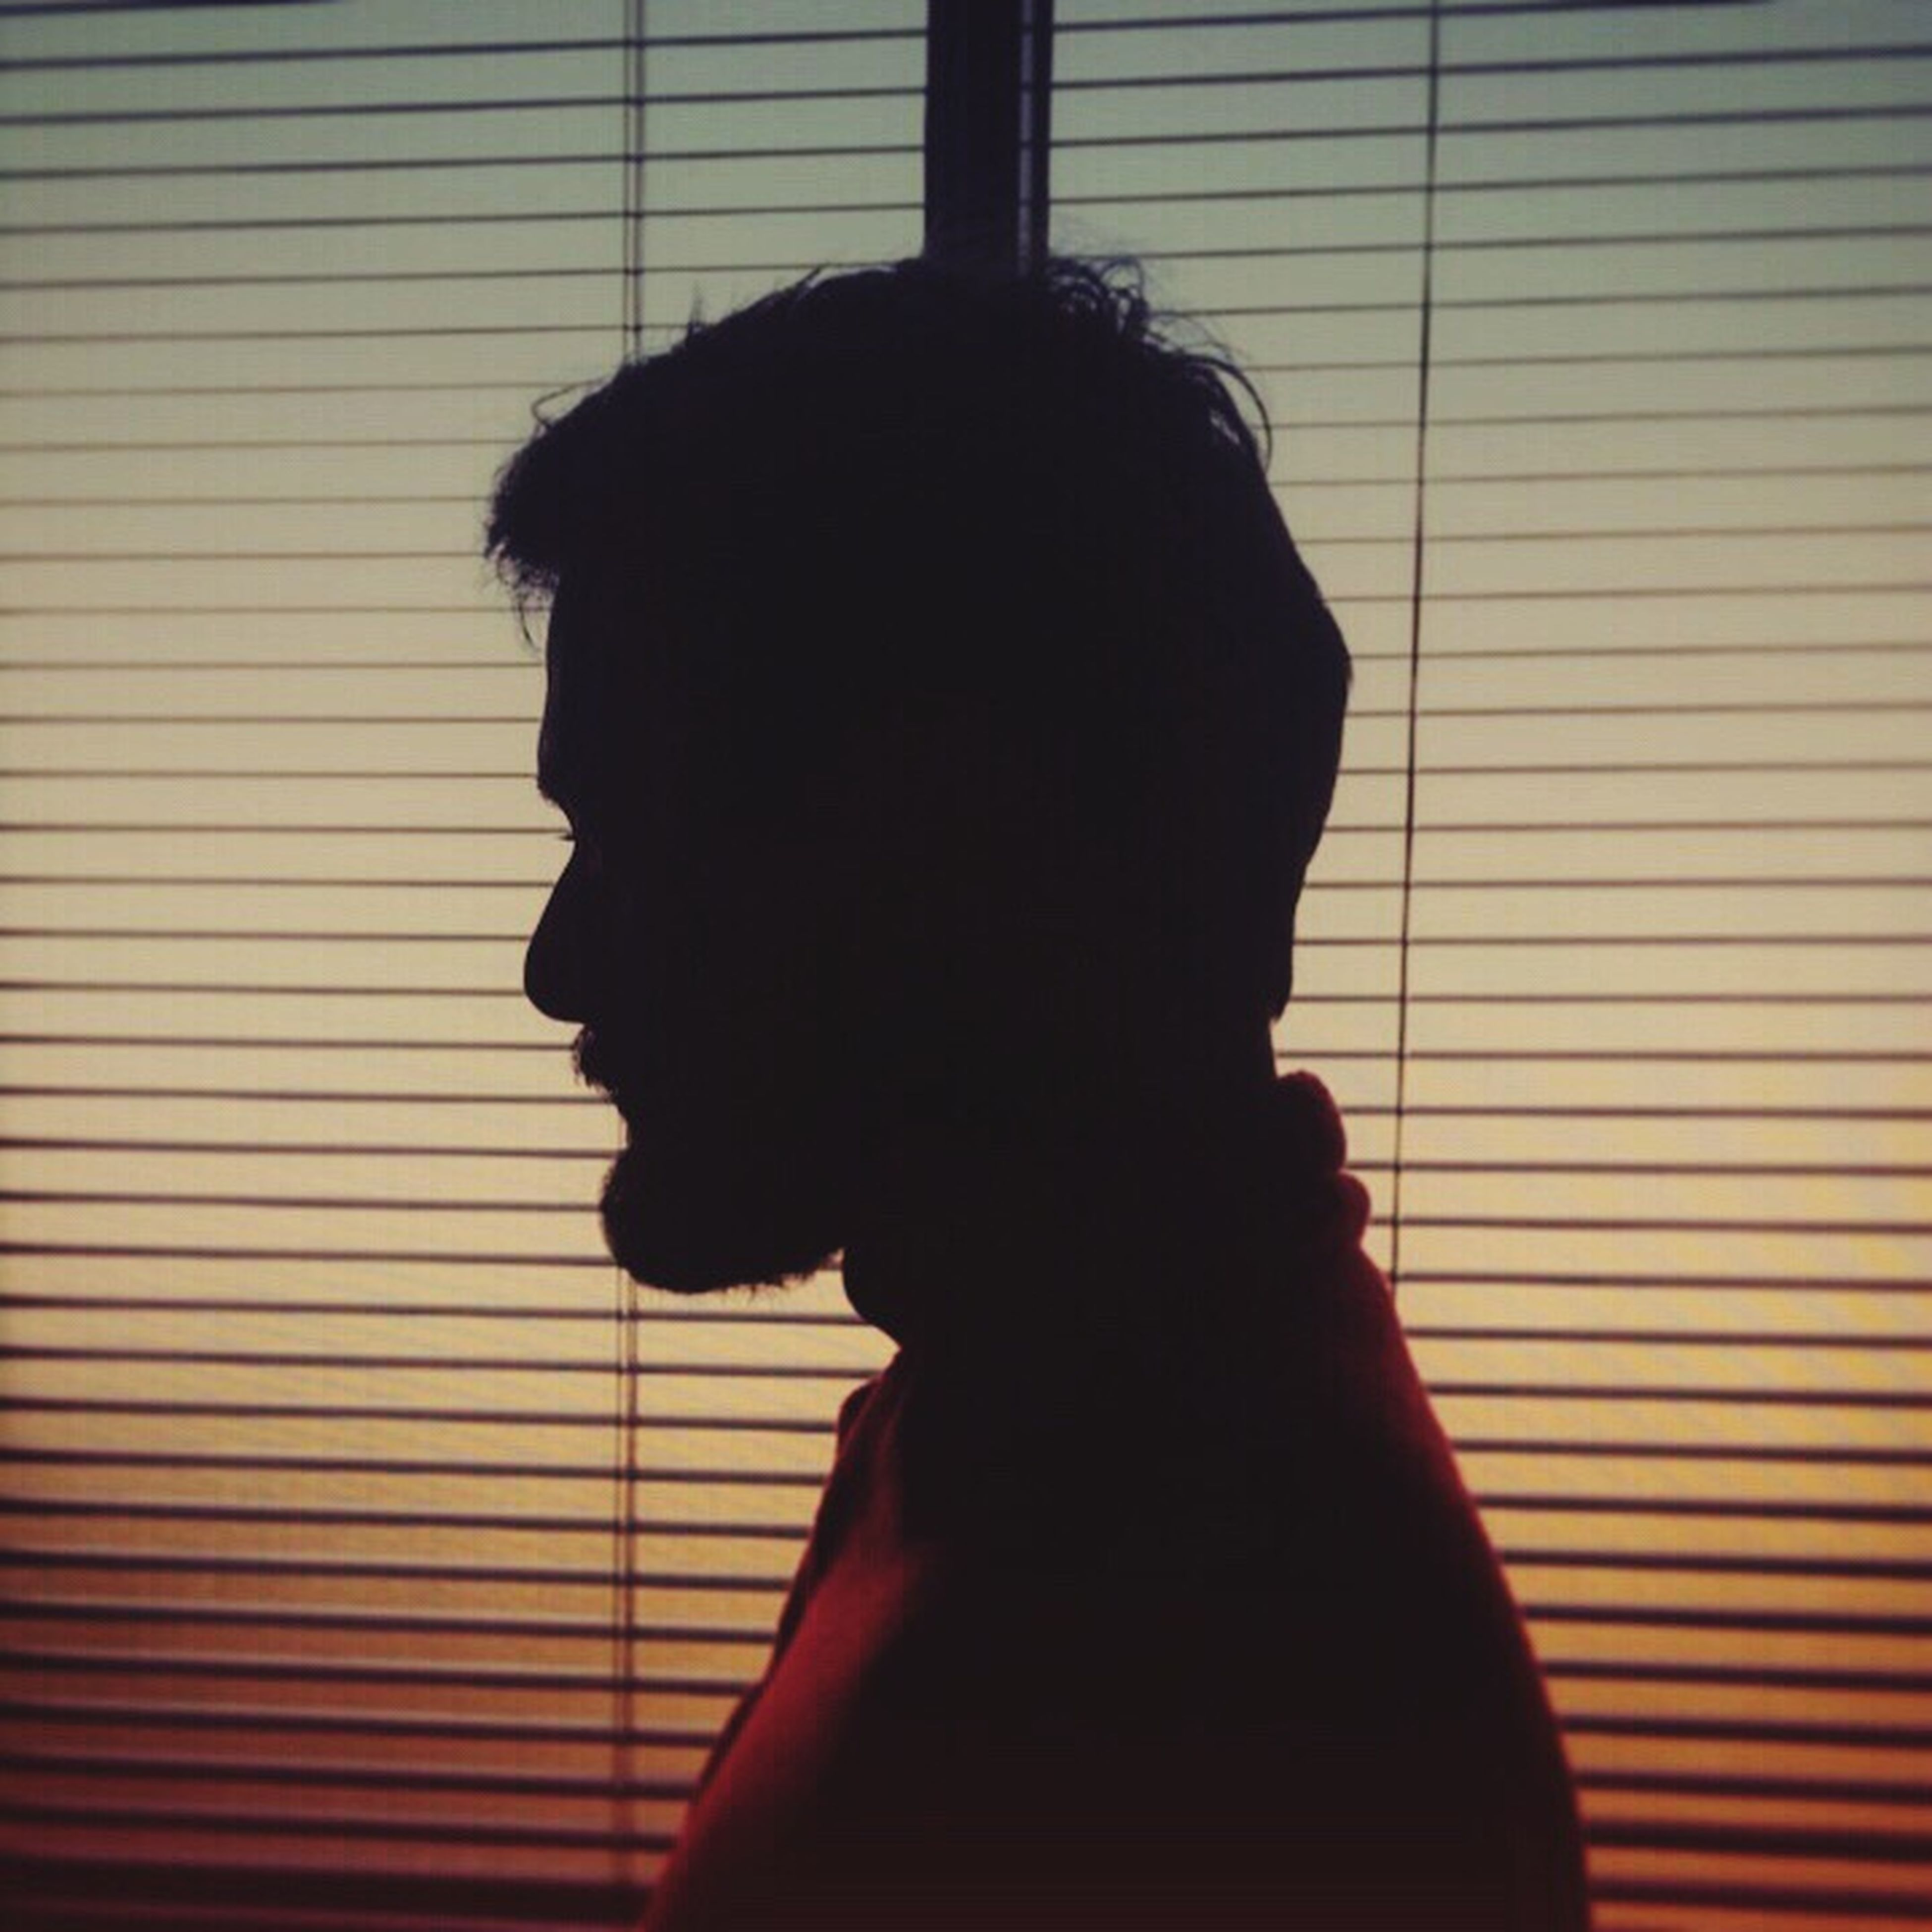 blinds, silhouette, one person, real people, indoors, window, side view, women, headshot, lifestyles, day, close-up, human hand, adult, people